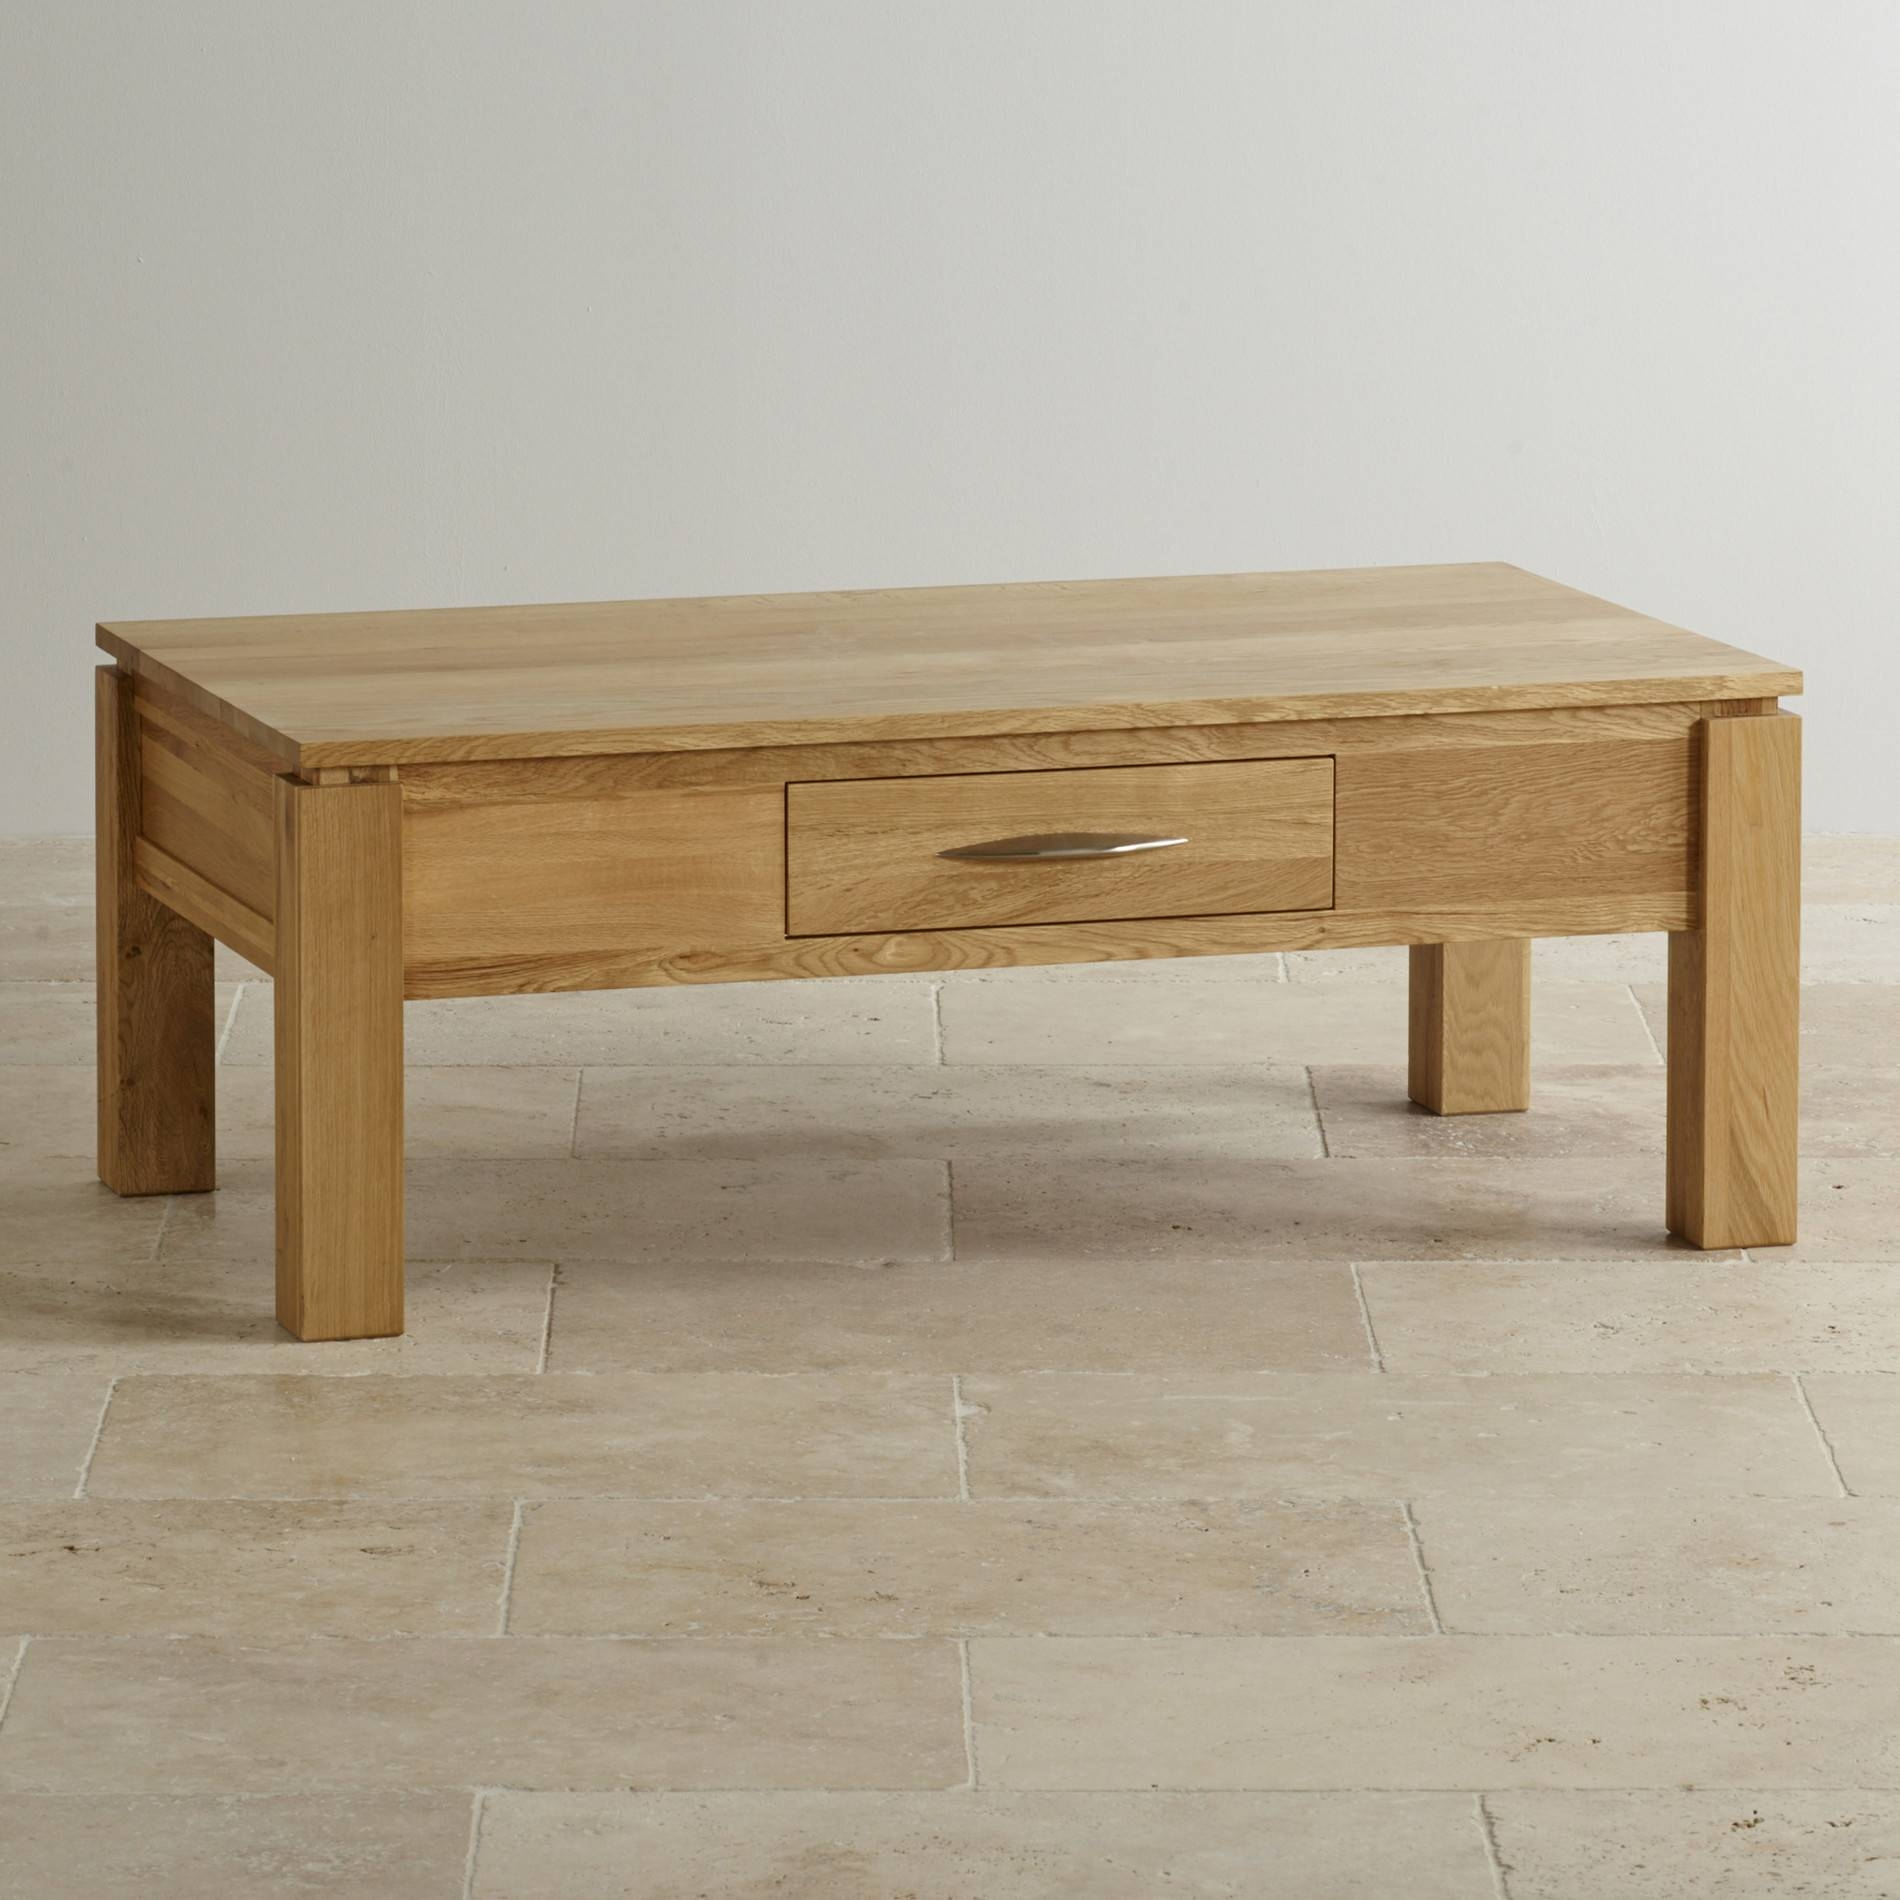 Galway Large Coffee Table In Solid Oak | Oak Furniture Land With Regard To Solid Oak Coffee Table With Storage (View 7 of 15)